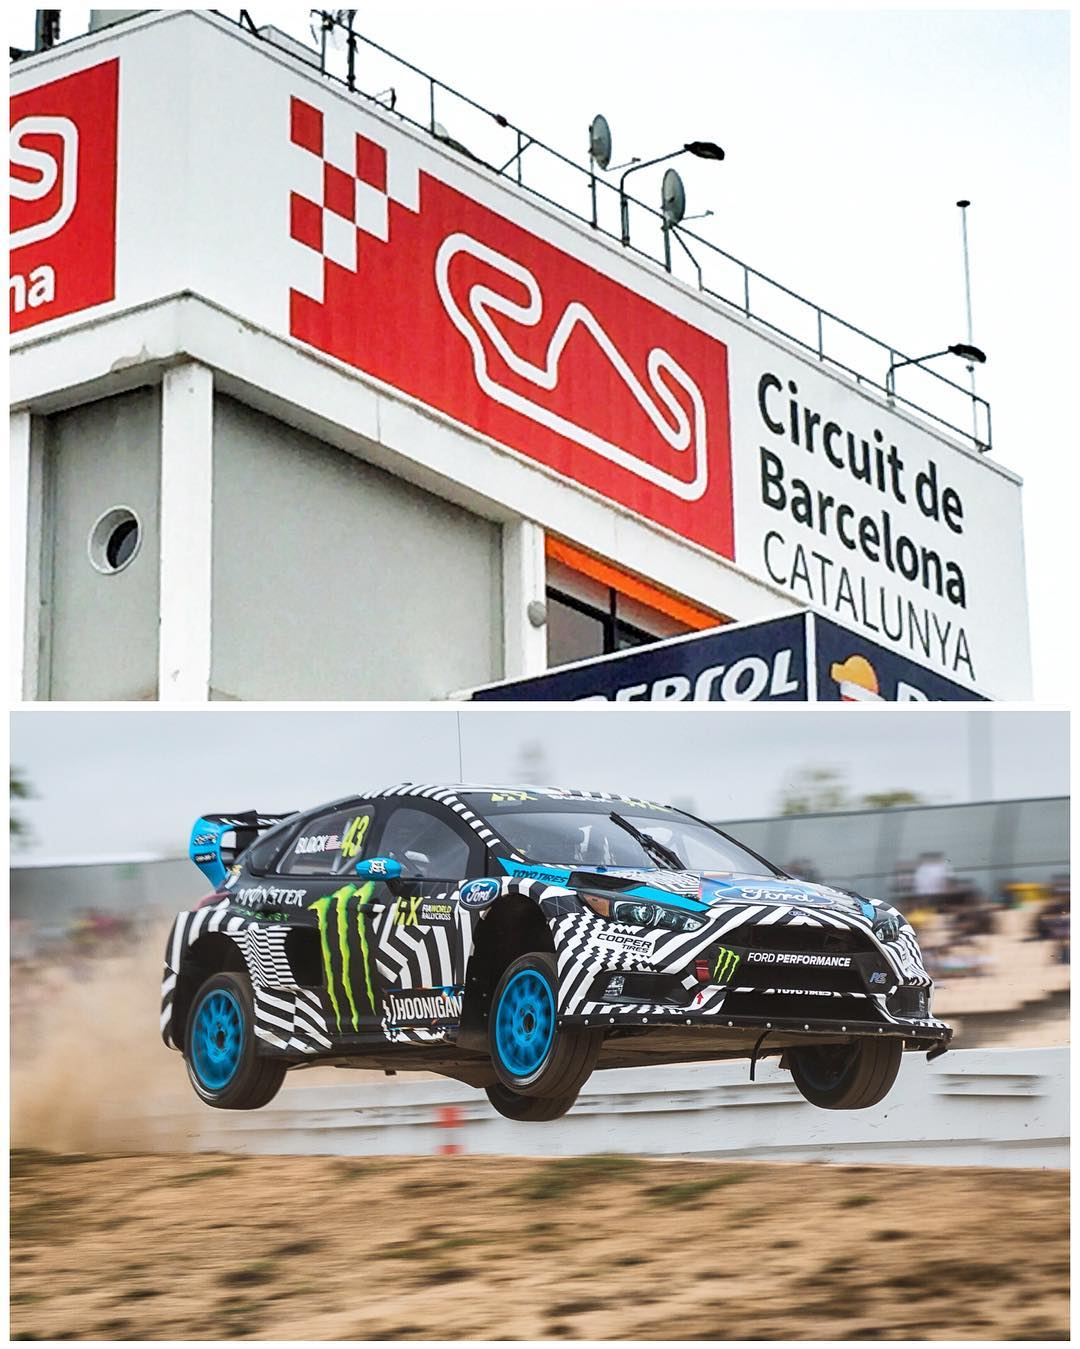 Hola, Barcelona! Out here at Circuit de Catalunya this morning for round 9 of @FIAWorldRX. Started the morning off with some airtime and a side of gravel for breakfast during practice. Feels good to be back out on a racetrack with the Ford Focus RS RX....